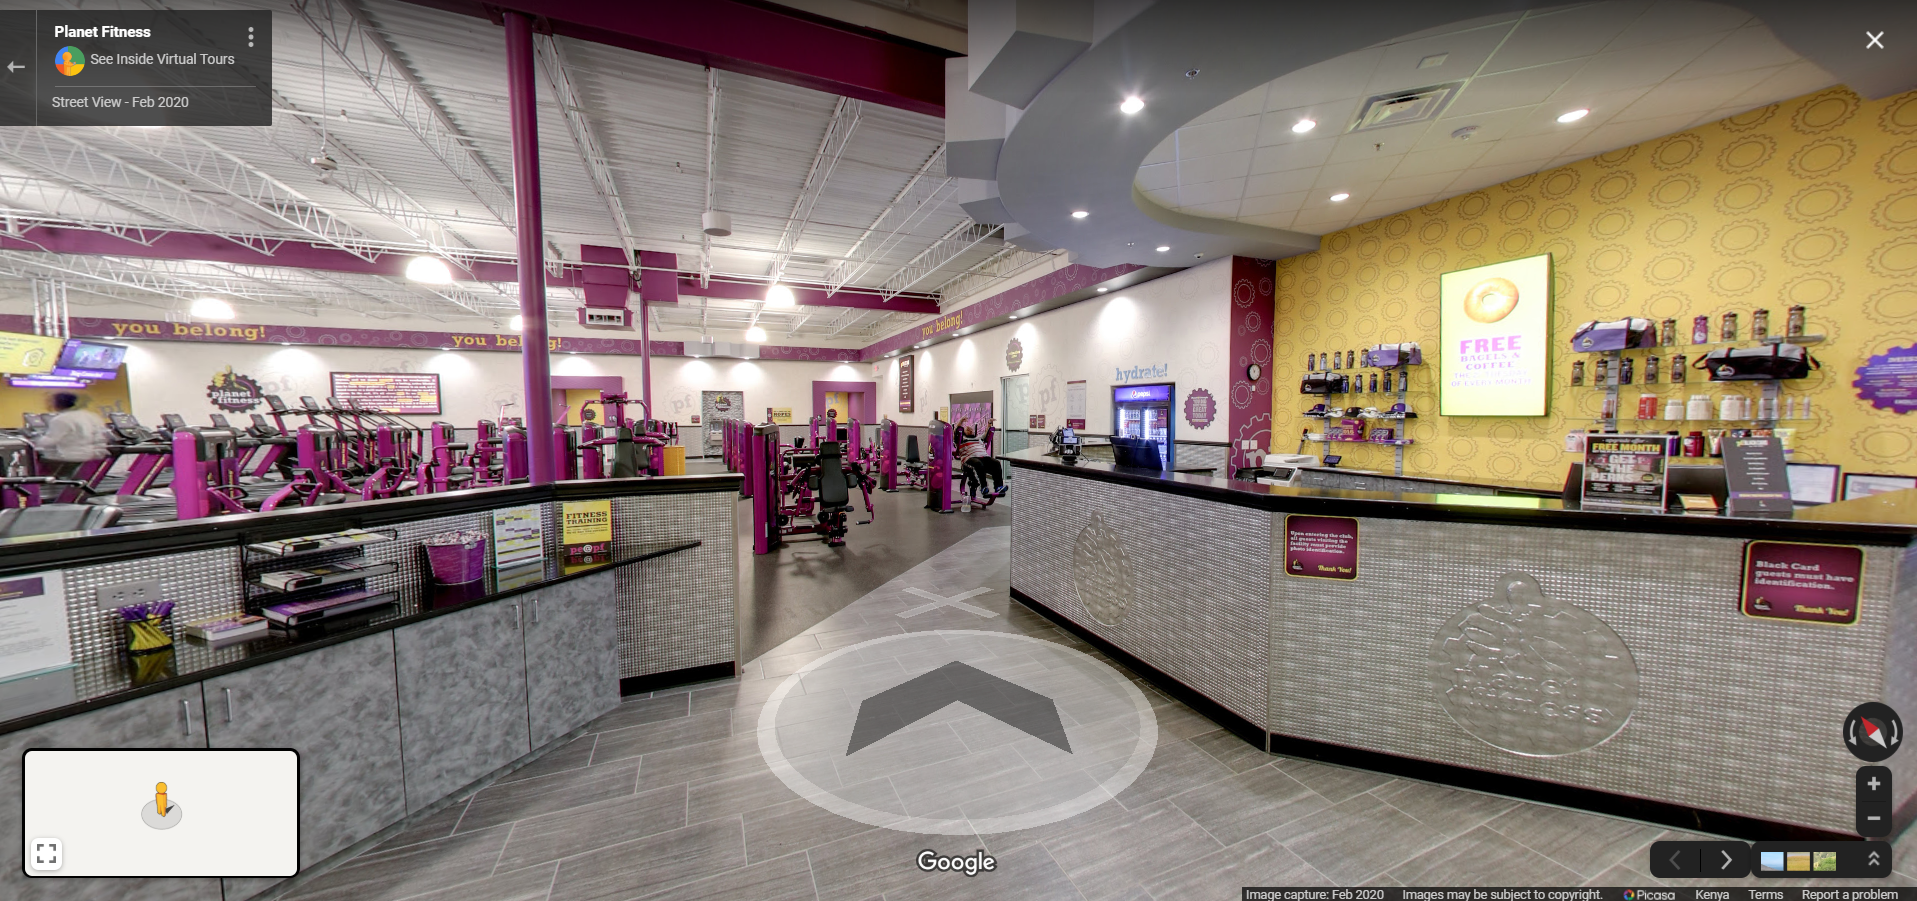 Planet Fitness - (Forest Lane) Dallas